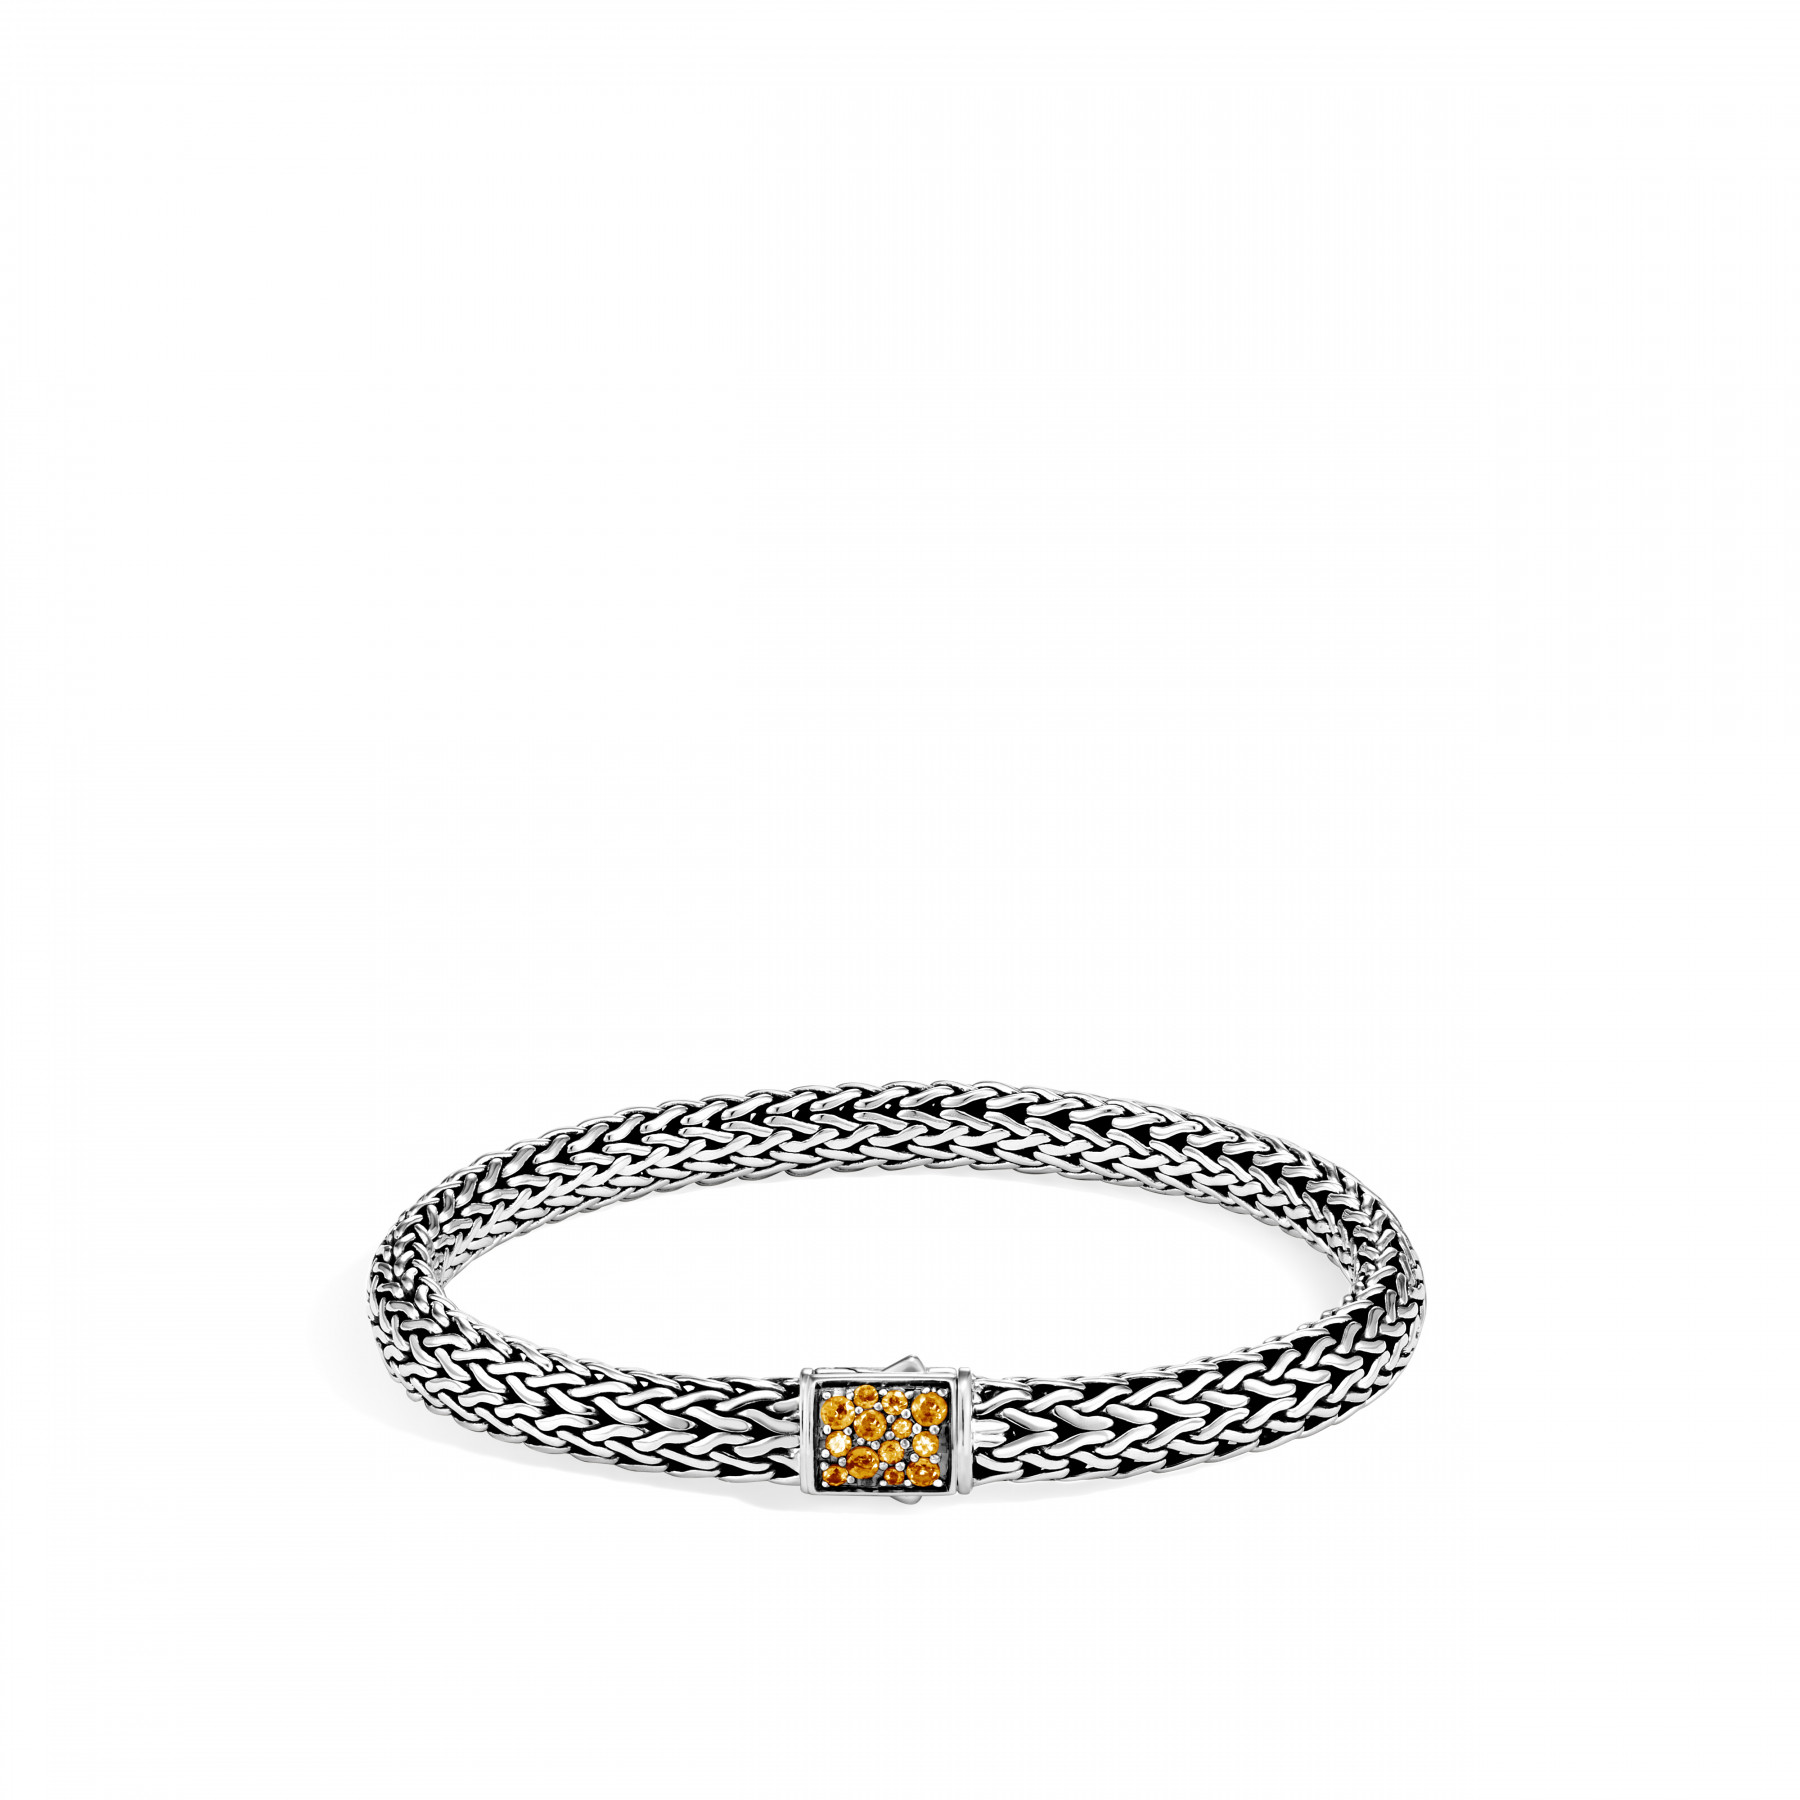 John Hardy Classic Chain Diamond and Citrine Reversible Bracelet - 6.5MMfront image